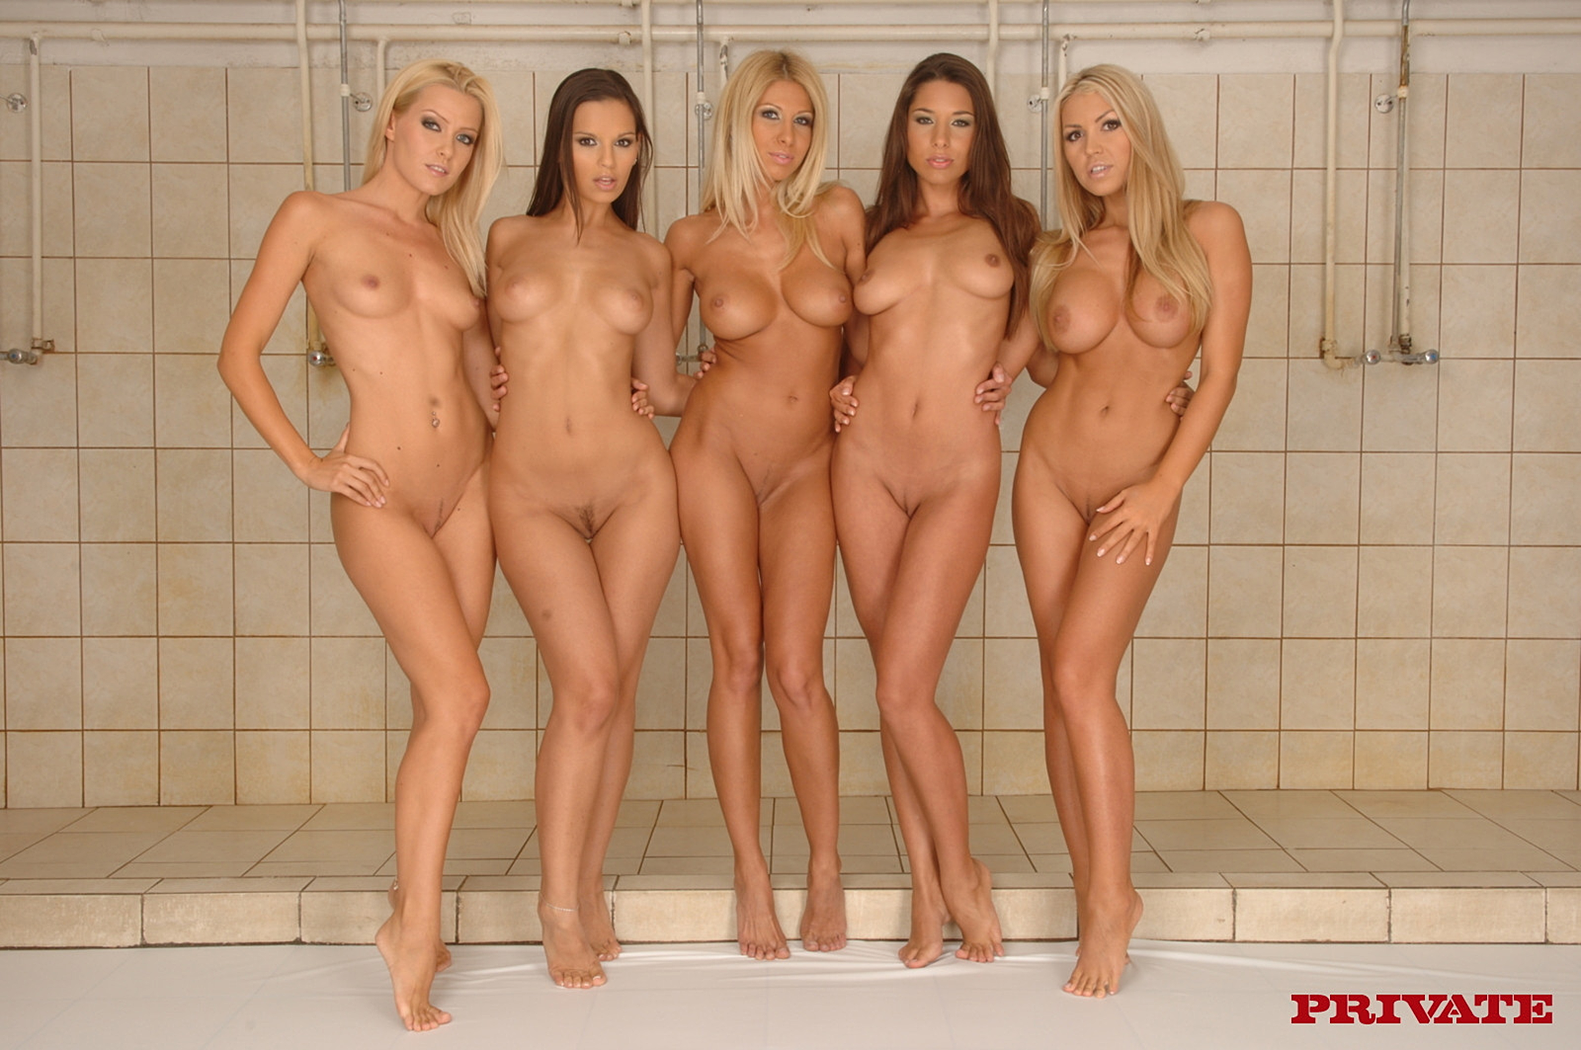 Hot Naked Girls | Group of Hot Nude Women in the Showe